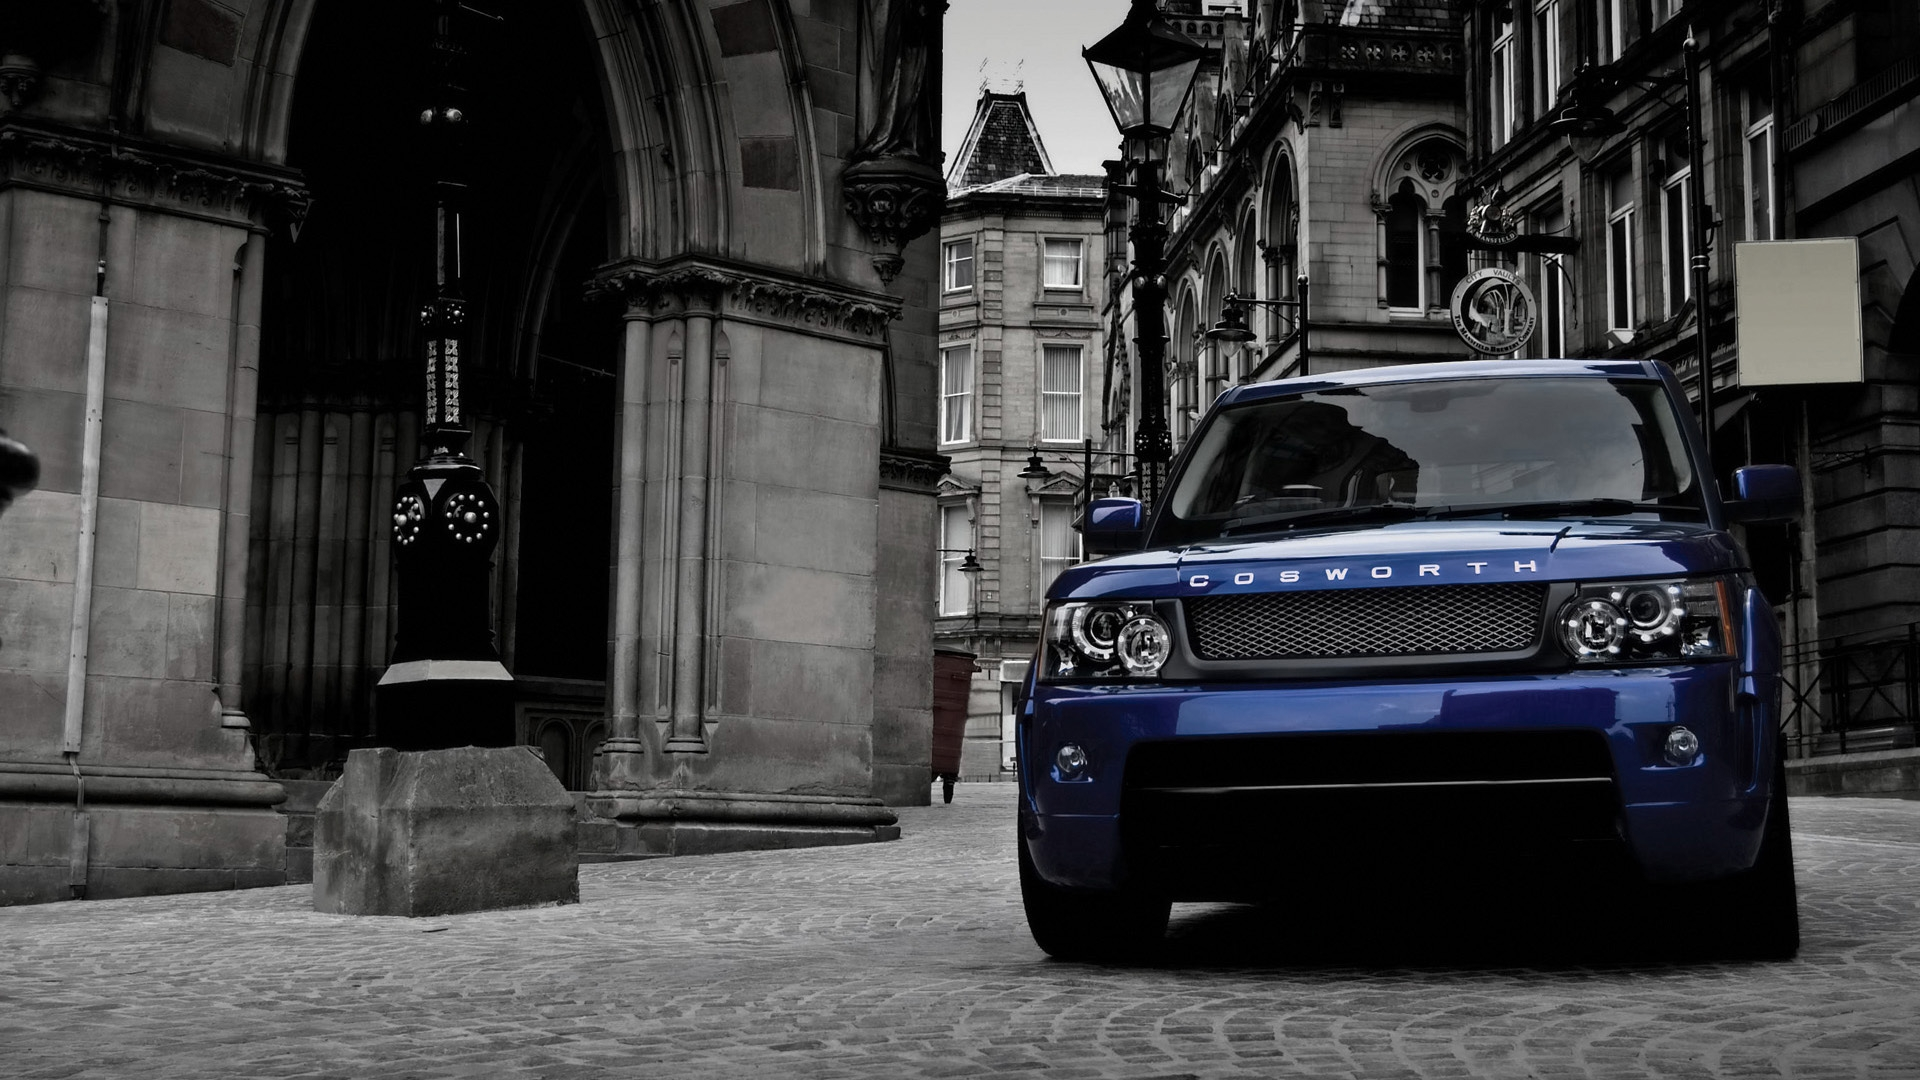 range_rover_background_wallpaper_1080p